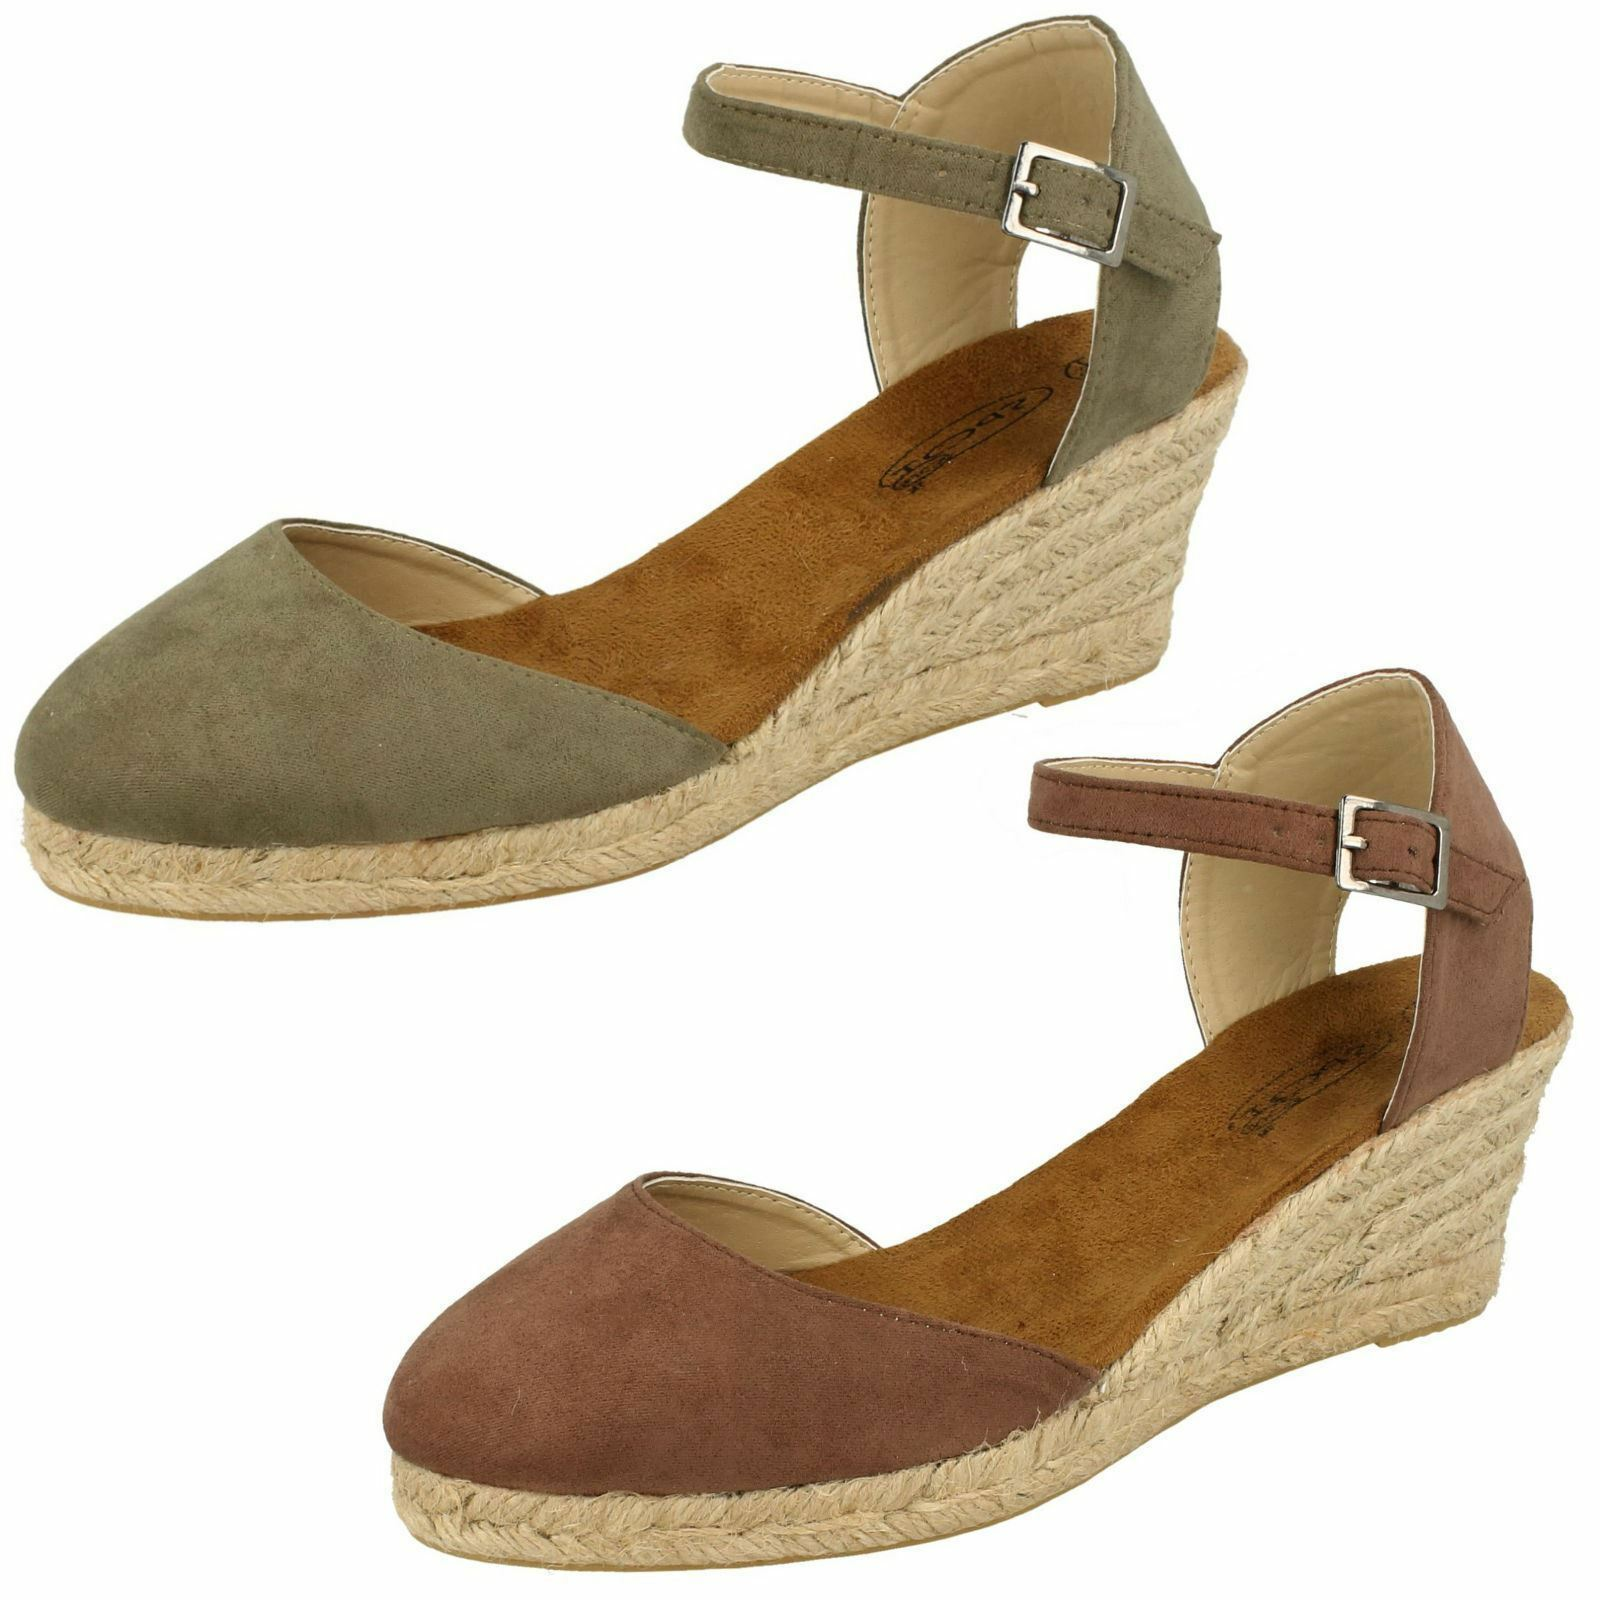 Gentlemen/Ladies Ladies Spot On Wedge Heel 'Sandals' High on-time grade First quality Rich on-time High delivery ad3c6a